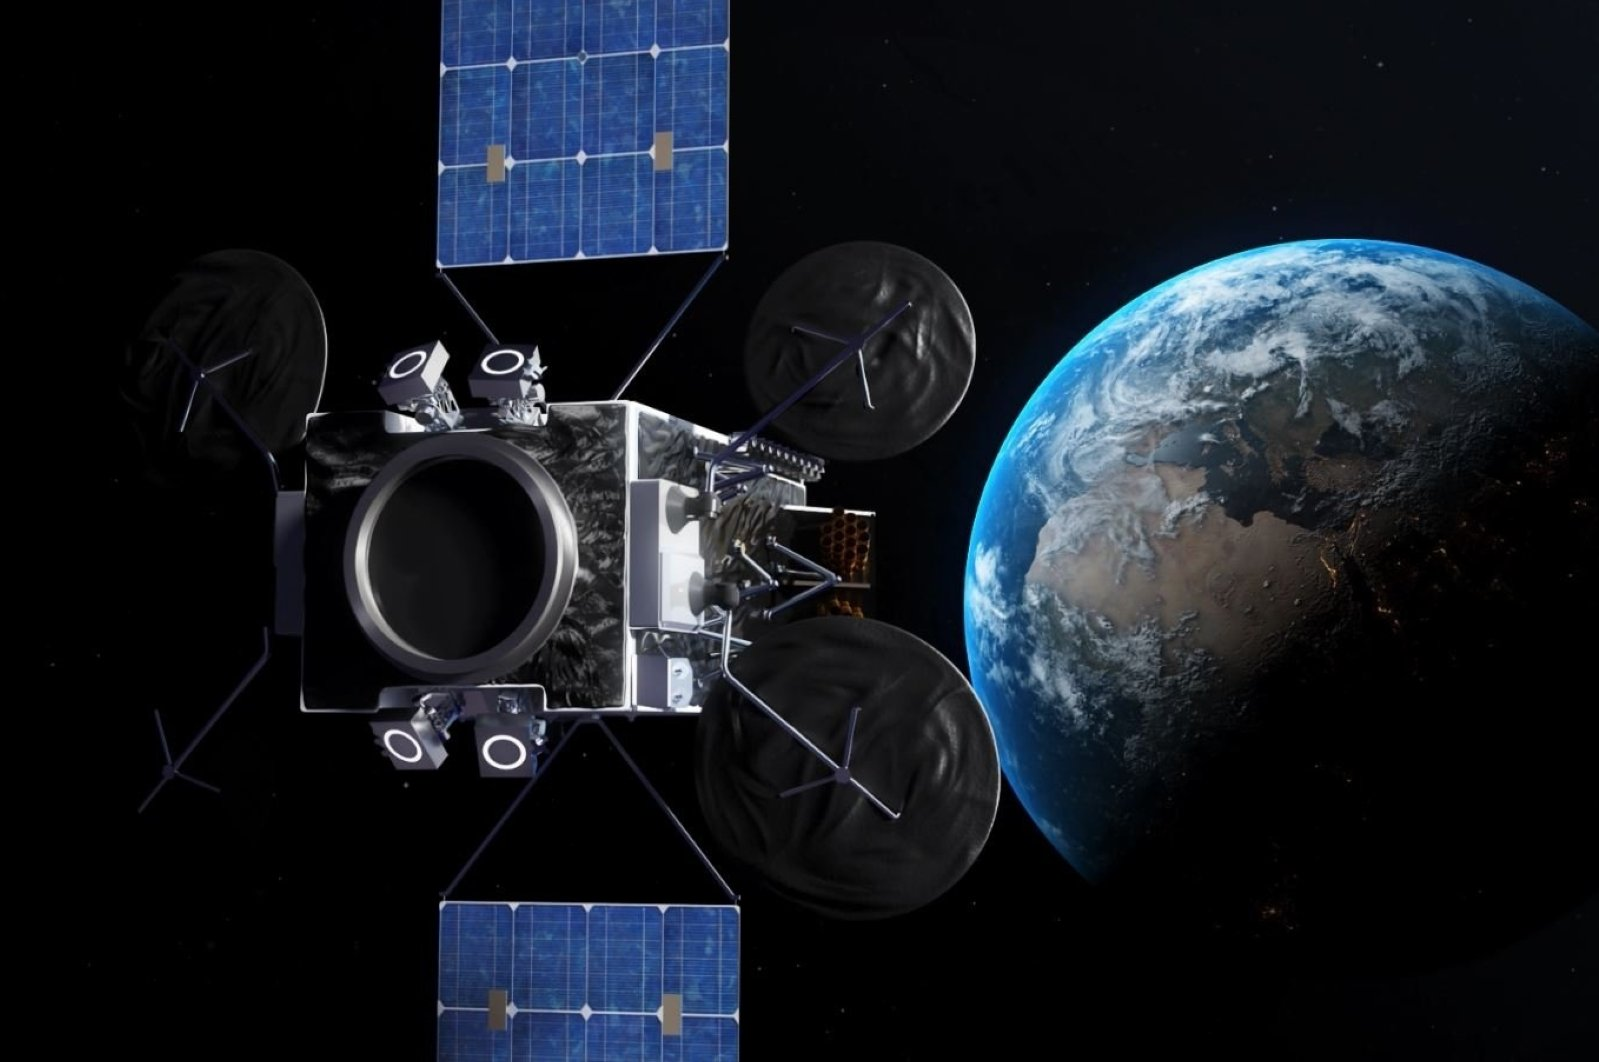 A screenshot taken from a video by Turkish Aerospace Industries (TAI) on the communication satellite technologies developed by the company, Feb. 12, 2021. (DHA Photo)